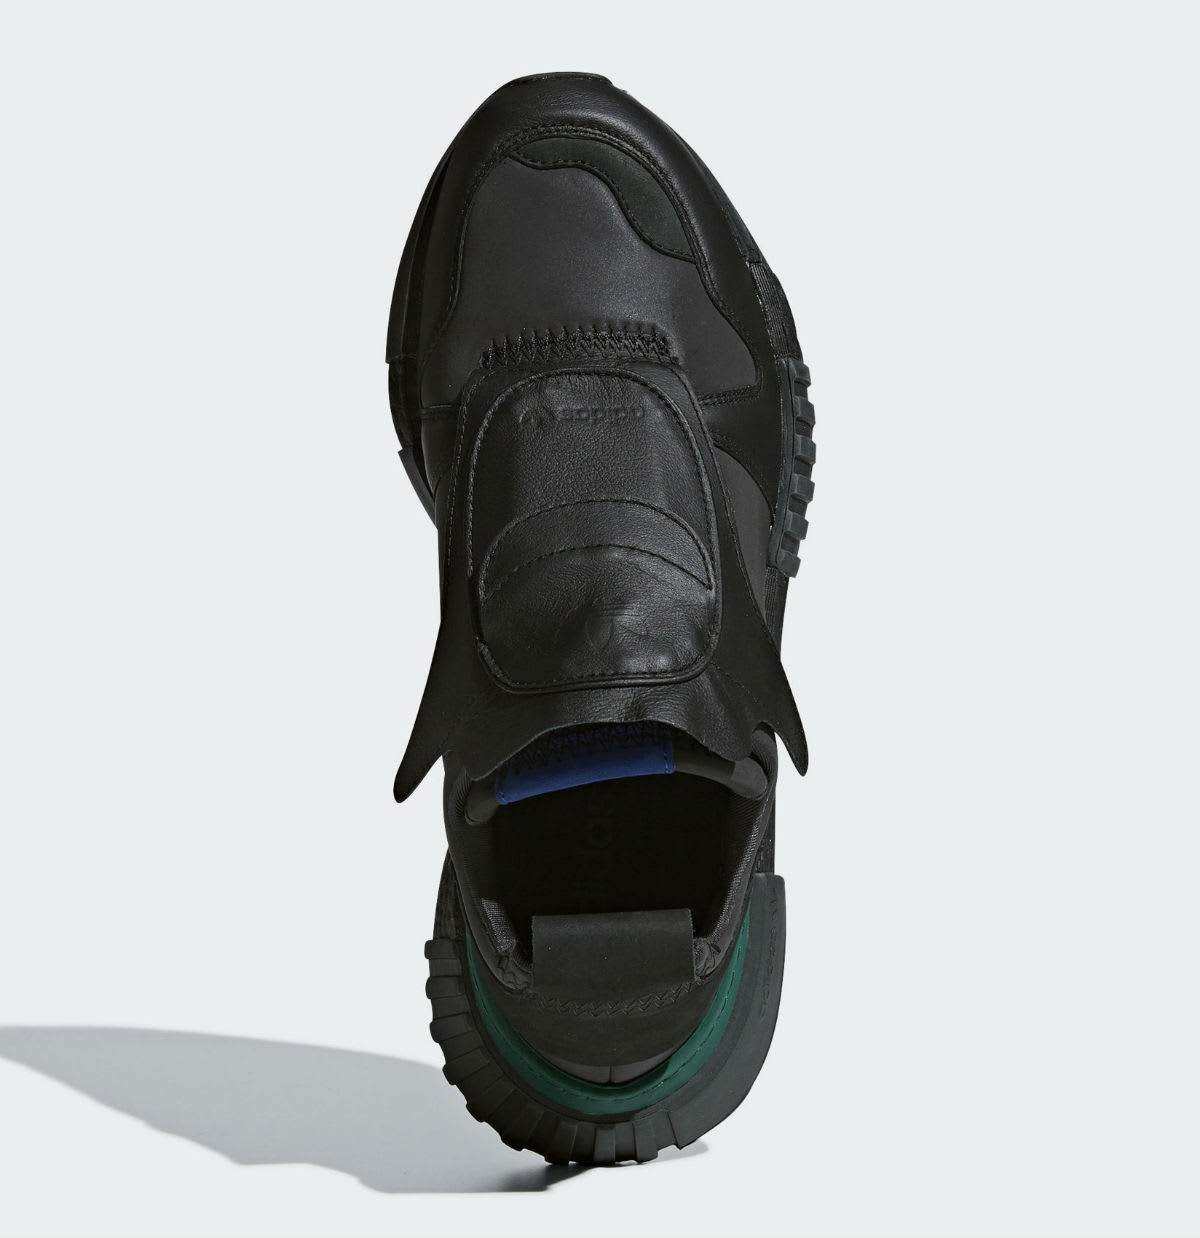 Adidas Futurepacer Black Release Date B37266 Top